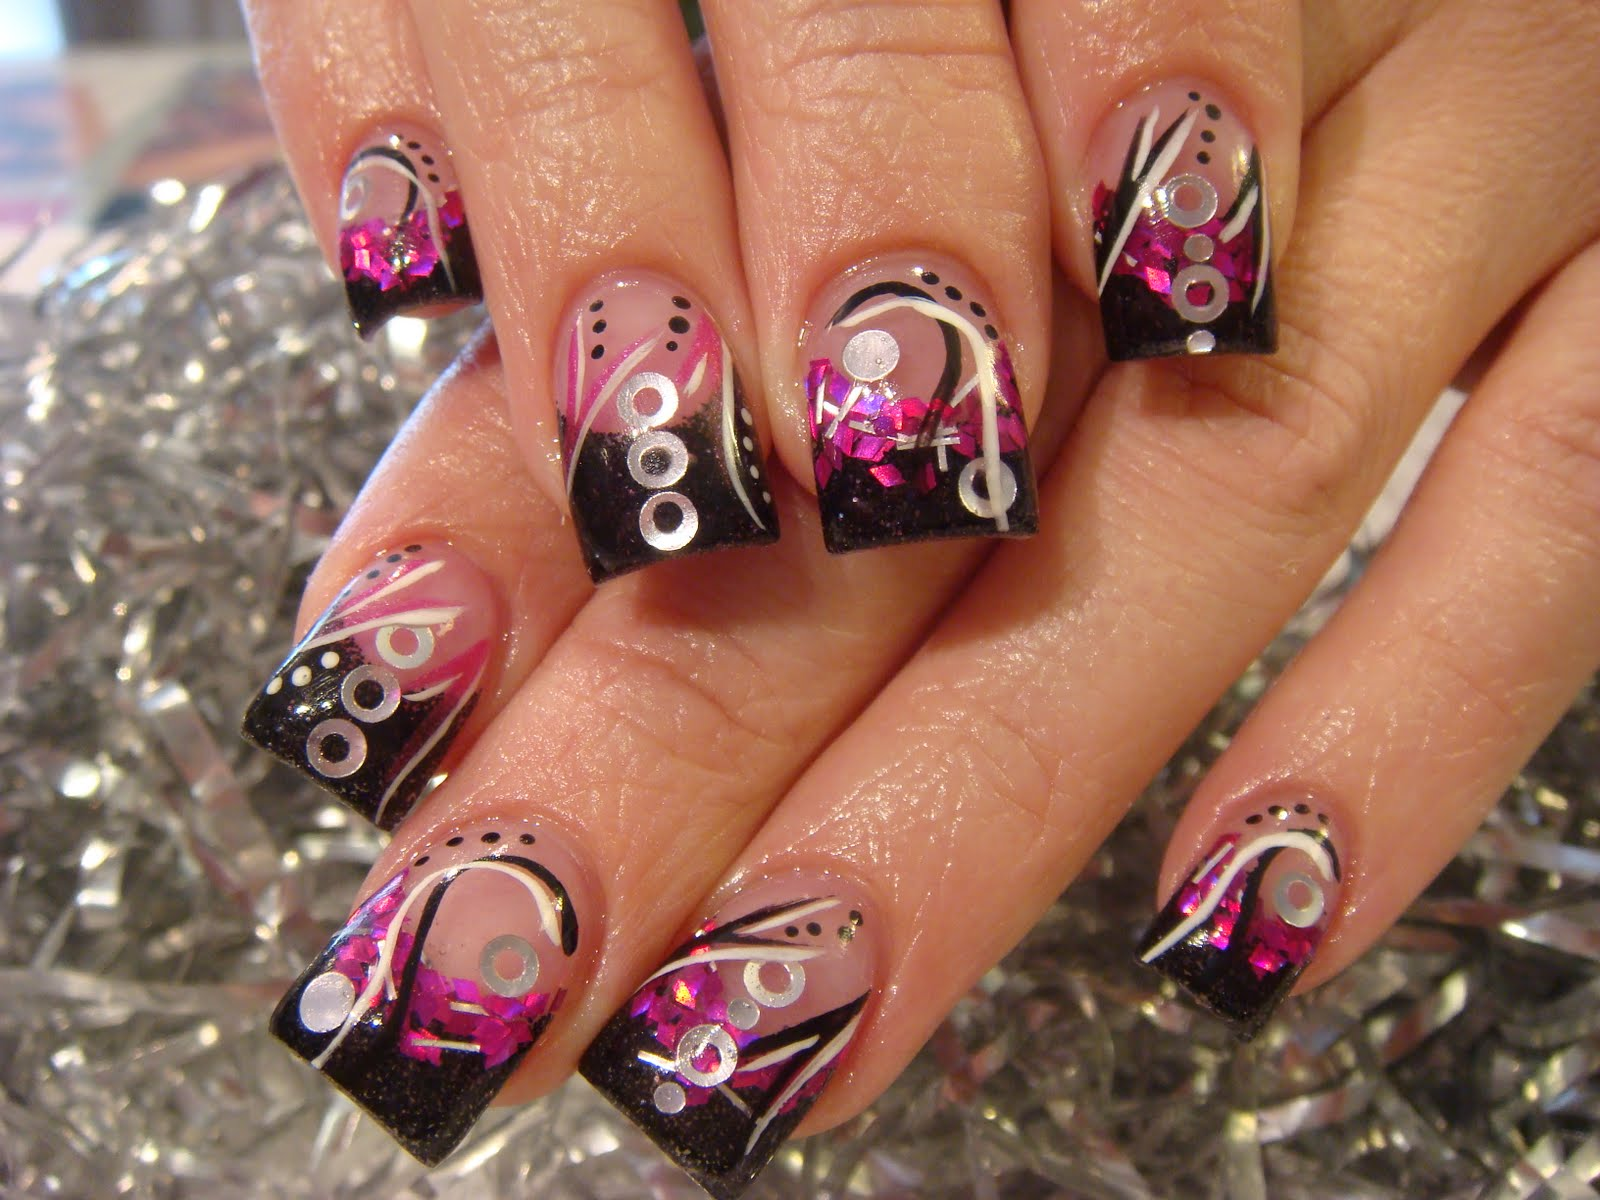 nail art april 2010. Black Bedroom Furniture Sets. Home Design Ideas